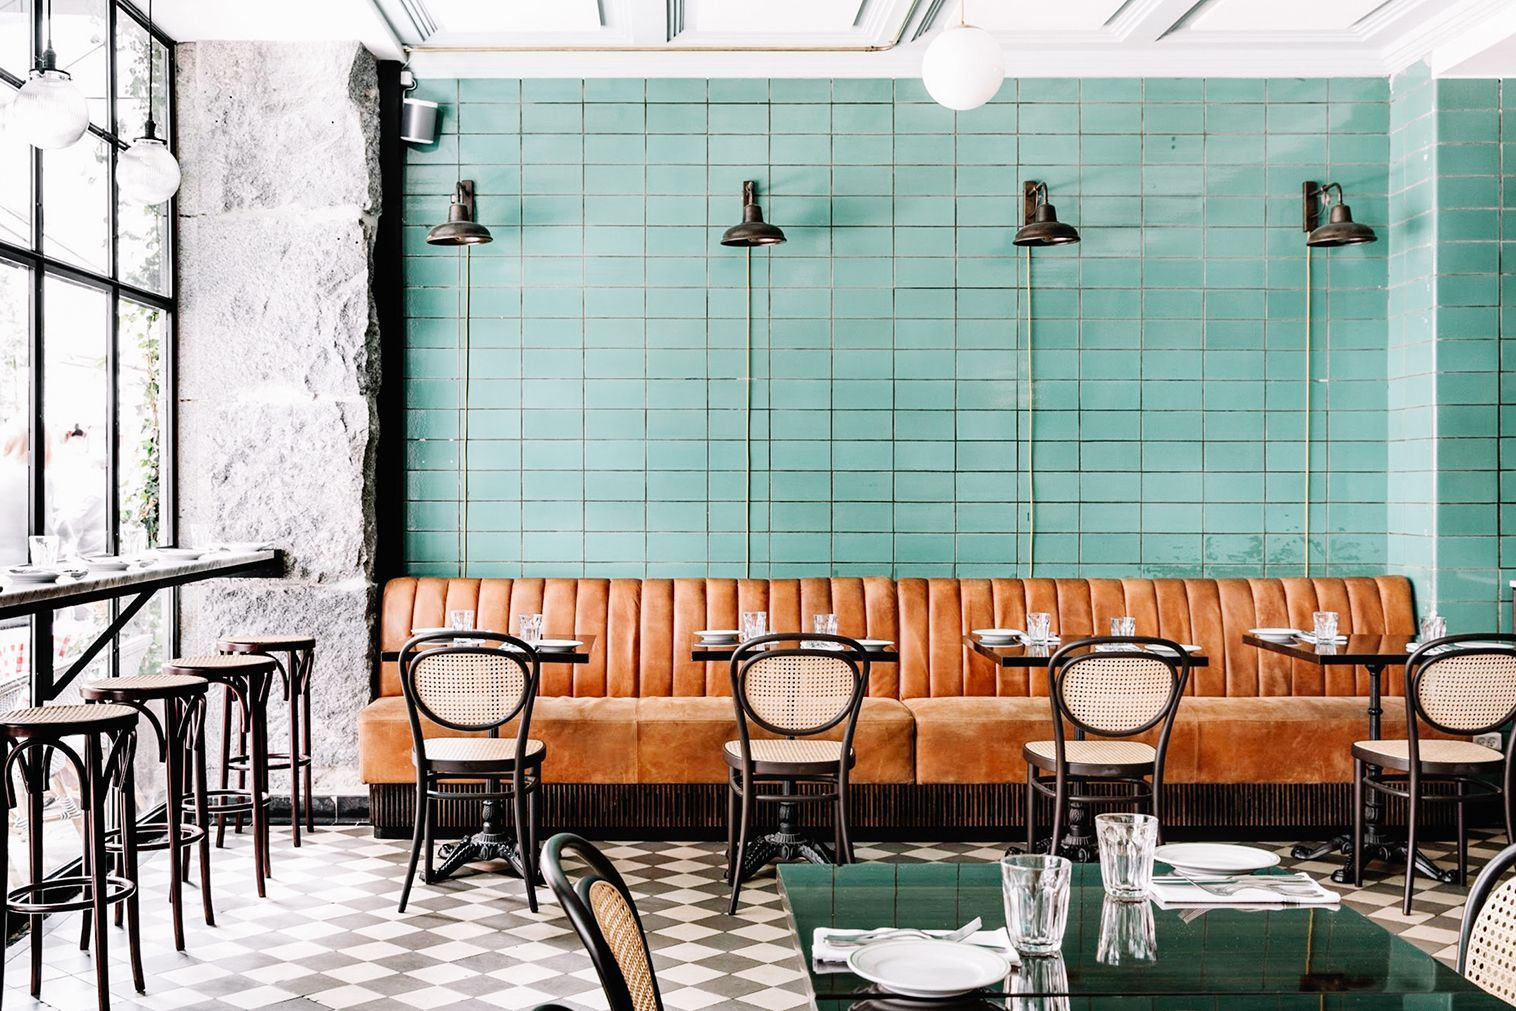 See How This Scandinavian Restaurant Does The Classic Parisian Bistro Restaurantdesign Bistro Interior Restaurant Interior Design Restaurant Design